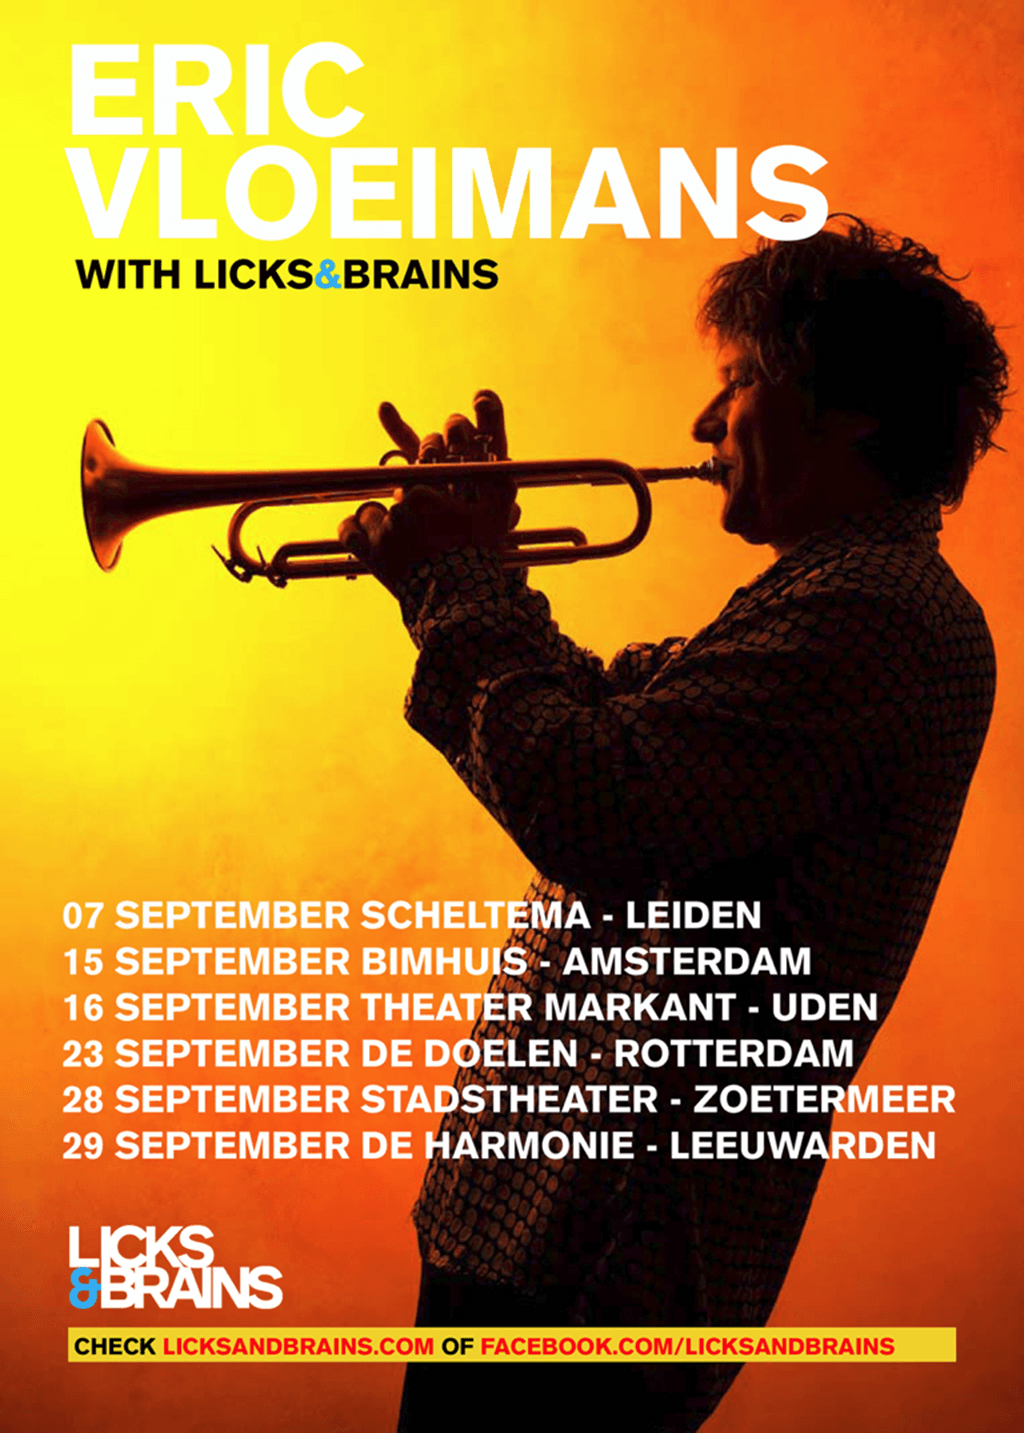 Licks & Brains Vloeimans